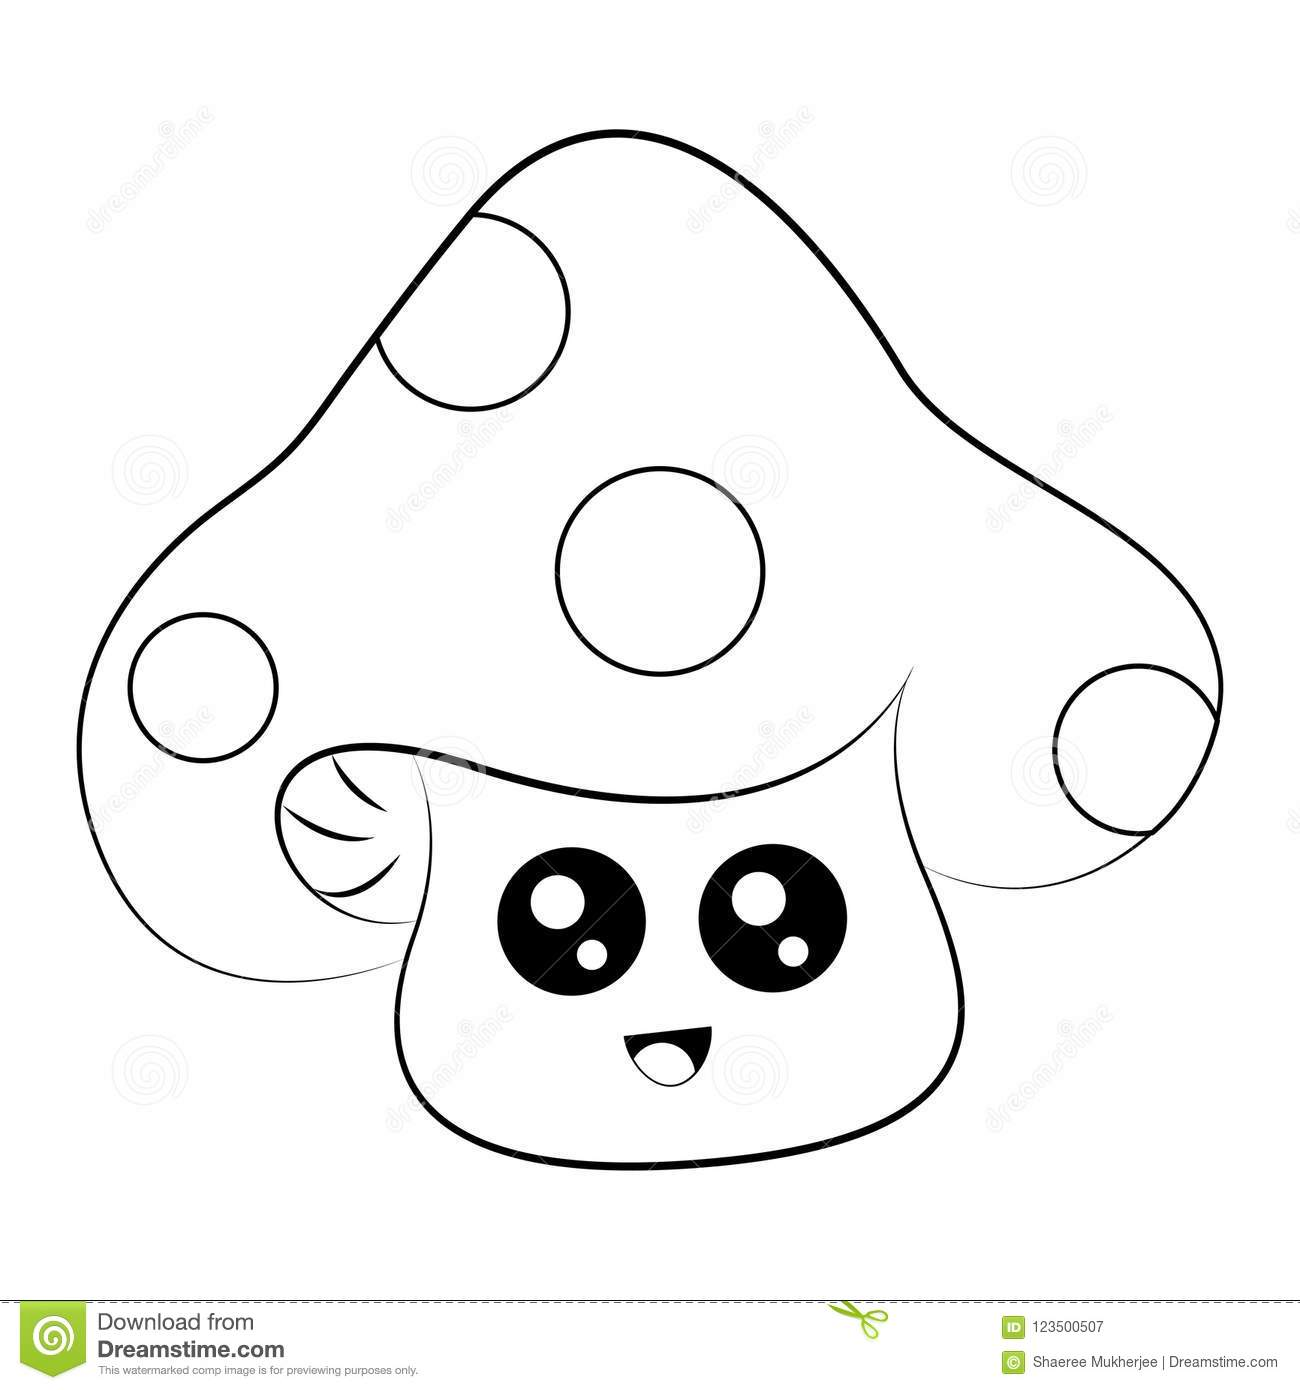 cartoon mushrooms coloring pages - photo#16